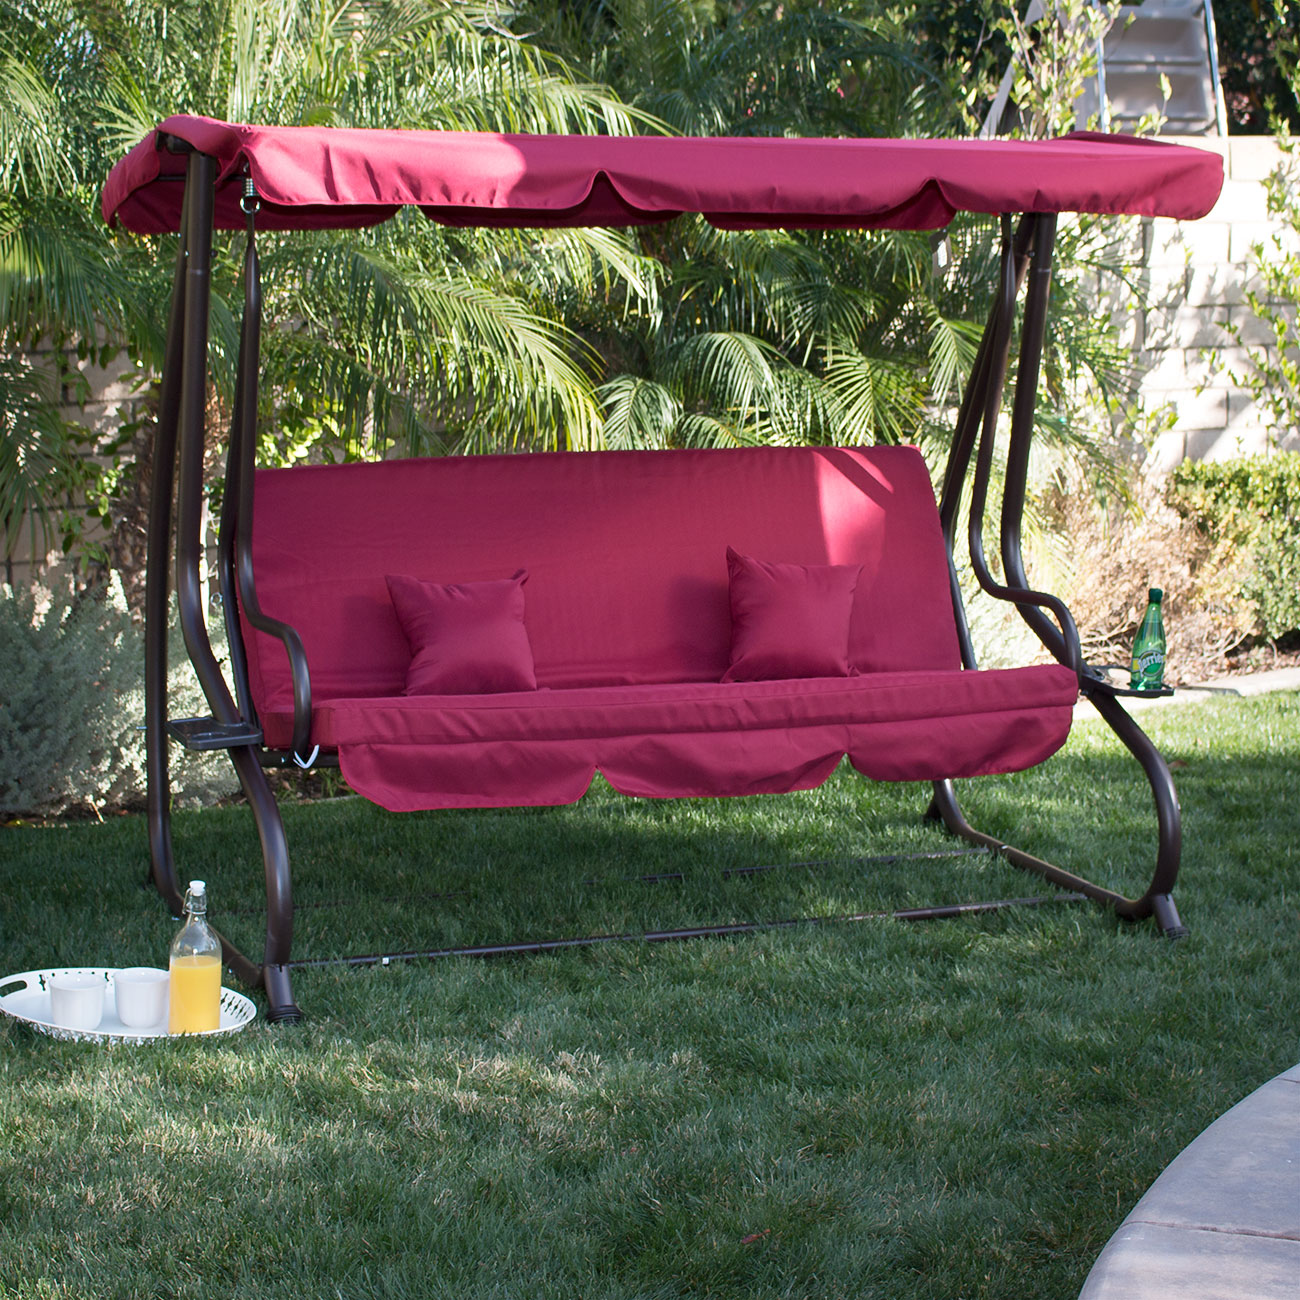 Belleze 3 Seat Porch & Patio Swing / Bed with pillow -Burgundy